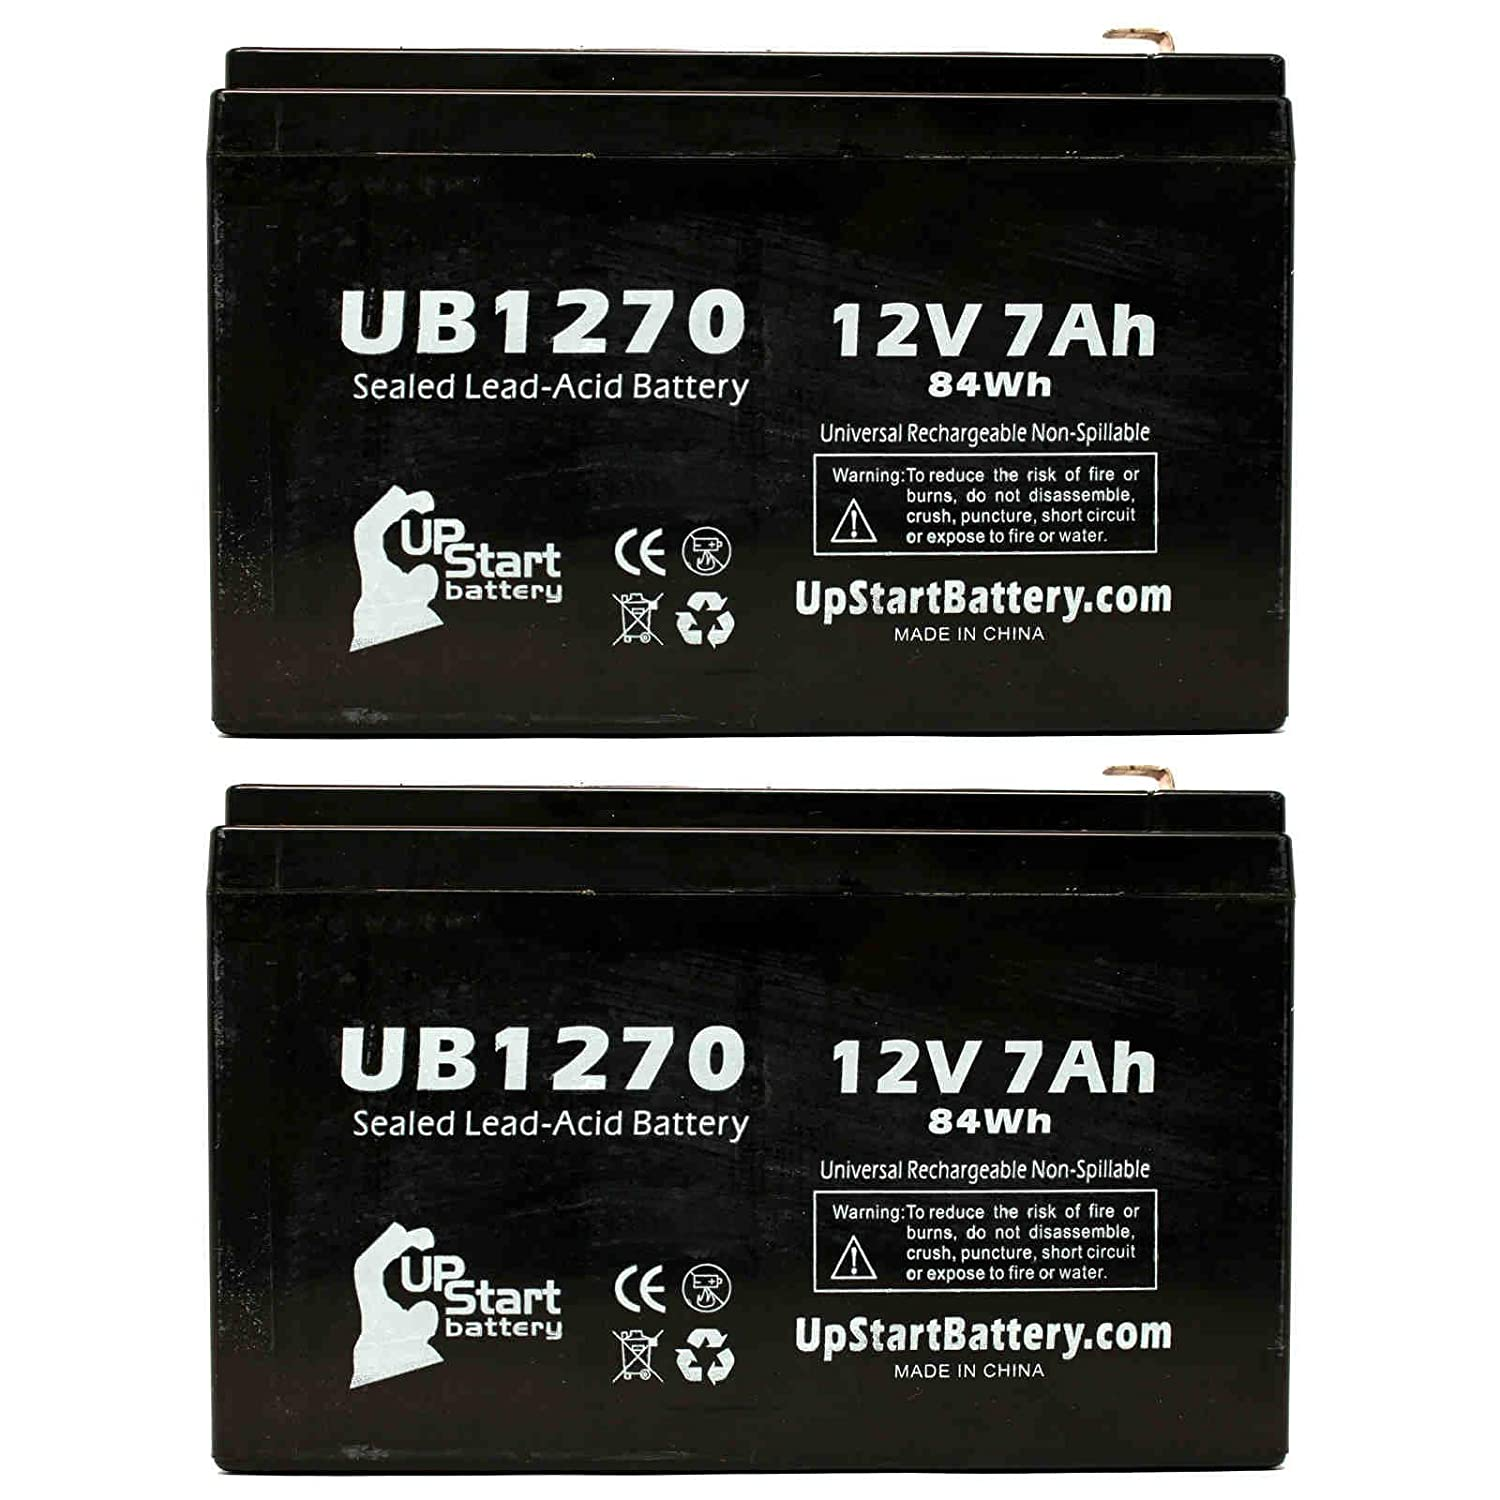 2x Pack - APC BACK-UPS 1300 RS1300 Battery - Replacement UB1270 Universal Sealed Lead Acid Battery (12V, 7Ah, 7000mAh, F1 Terminal, AGM, SLA) - Includes 4 F1 to F2 Terminal Adapters Upstart Battery UB1270-2BATT-DL285